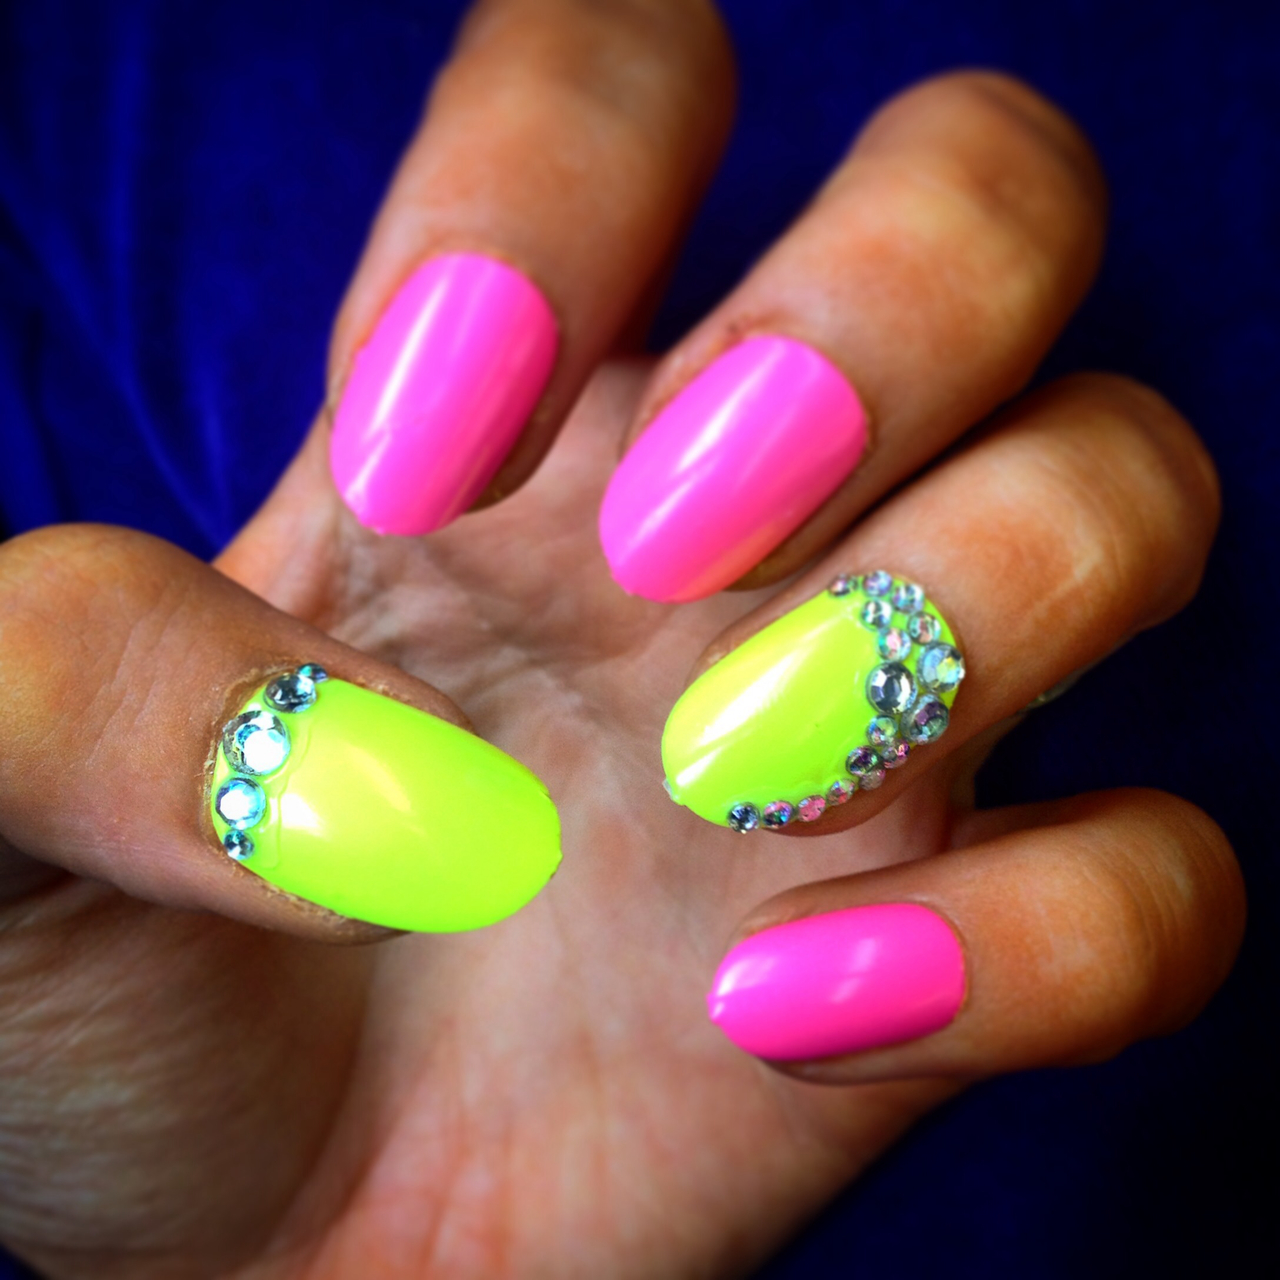 Neon pink nails with neon yellow accent nail & Swarovski crystals